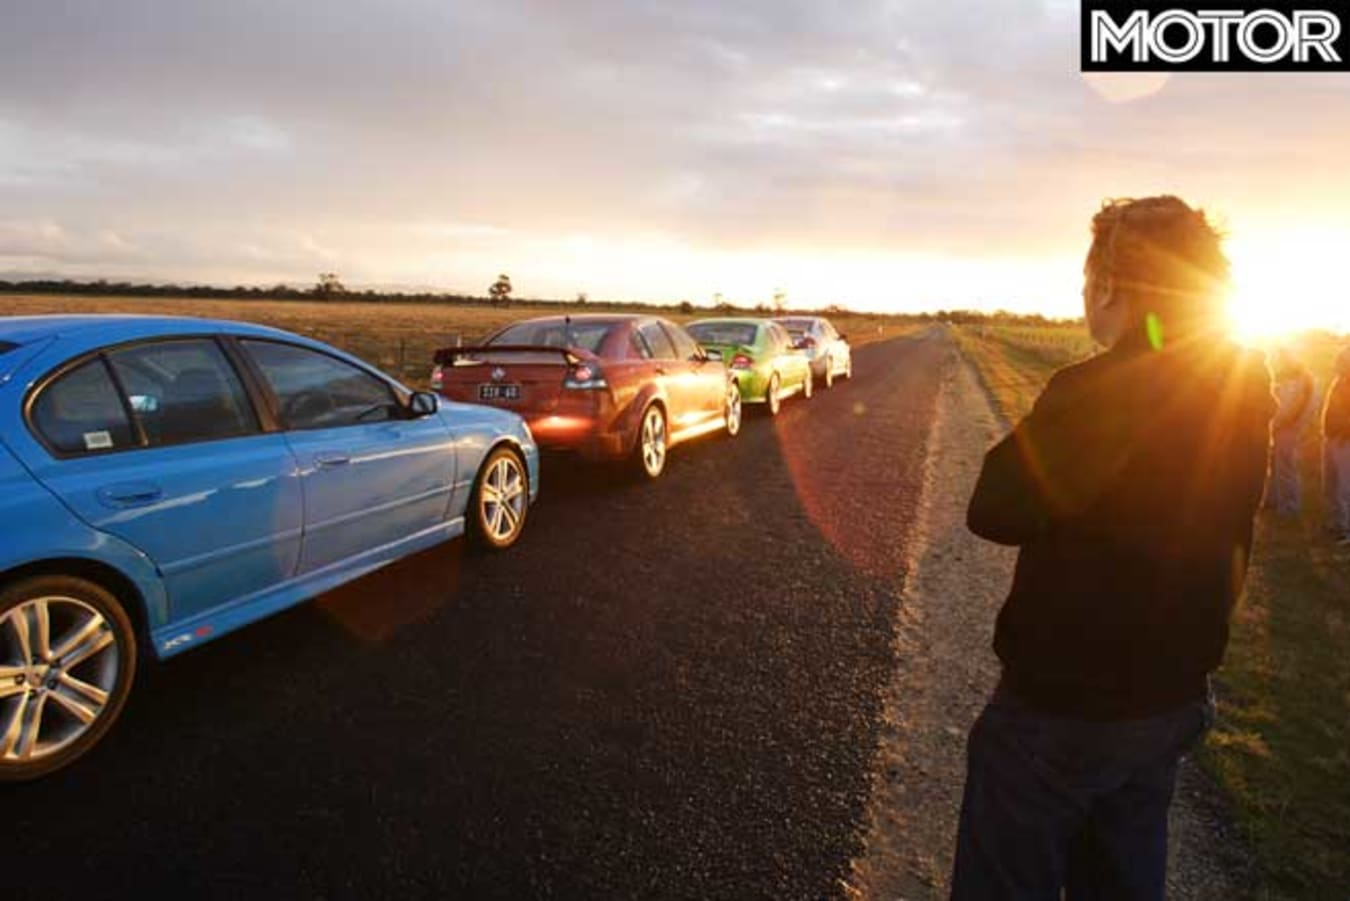 2006 Holden VE Commodore SS SS V Ford Falcon XR 8 XR 6 T Comparison Road Test Jpg